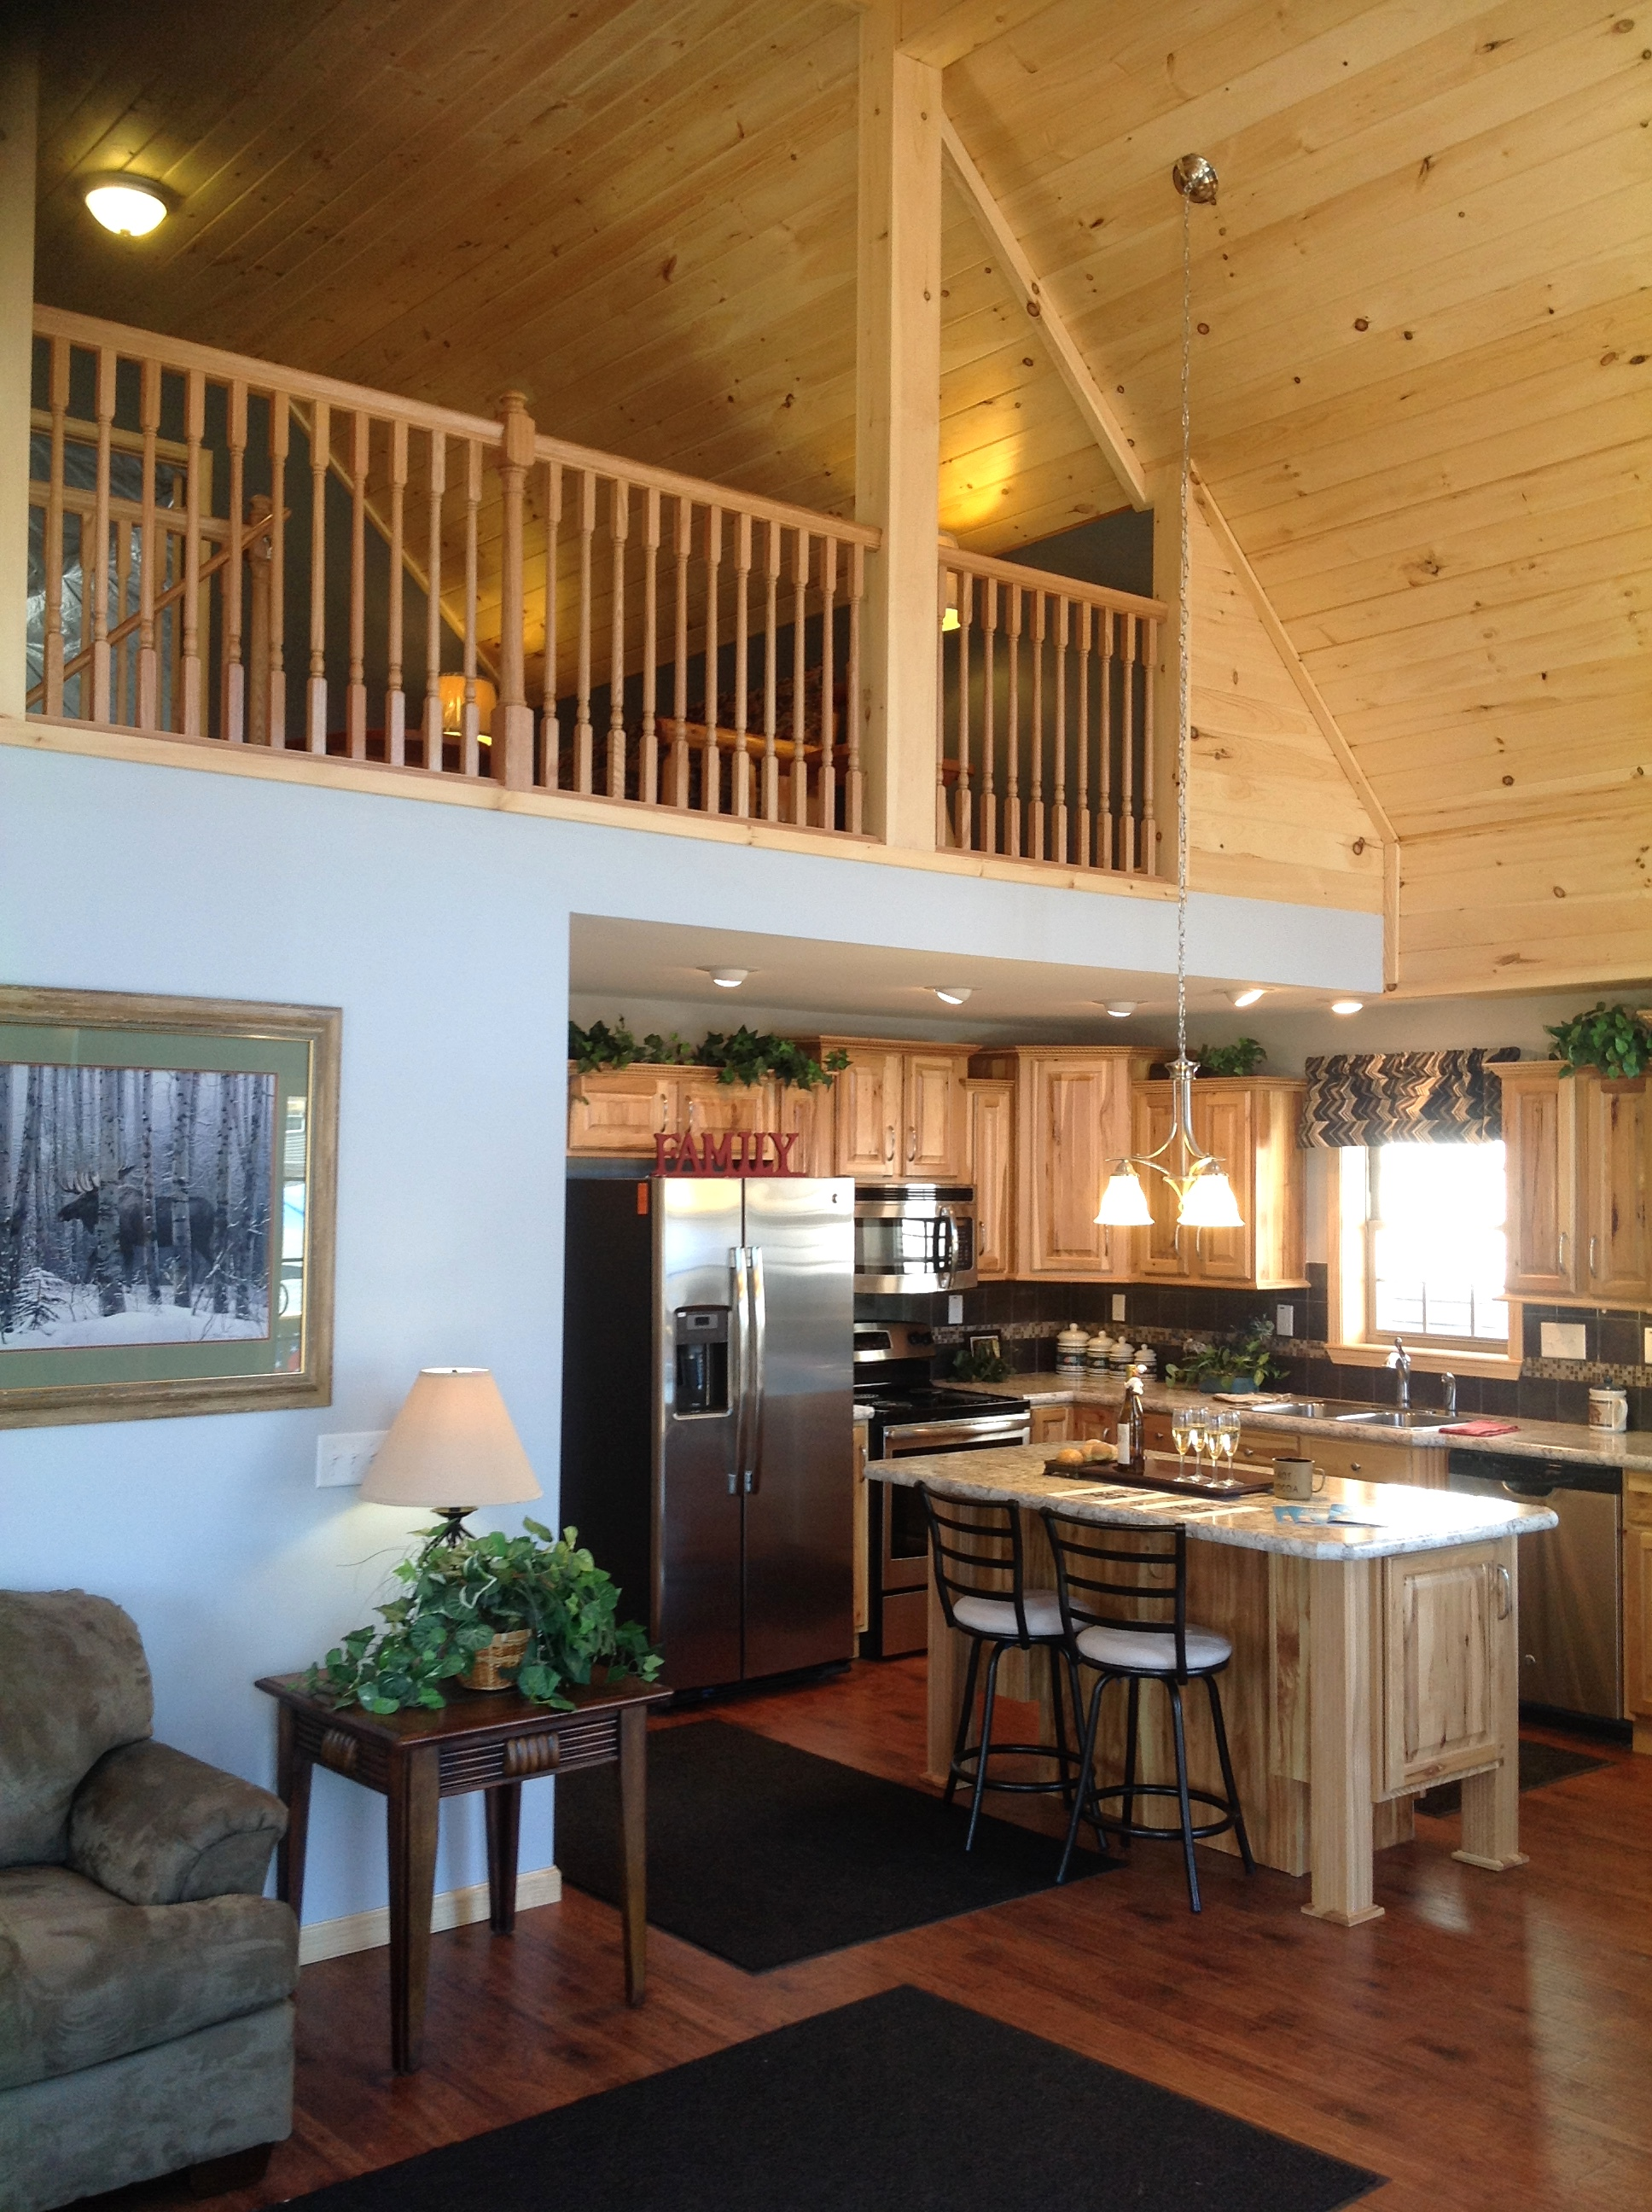 Vaulted loft with pine railing, overlooking kitchen.